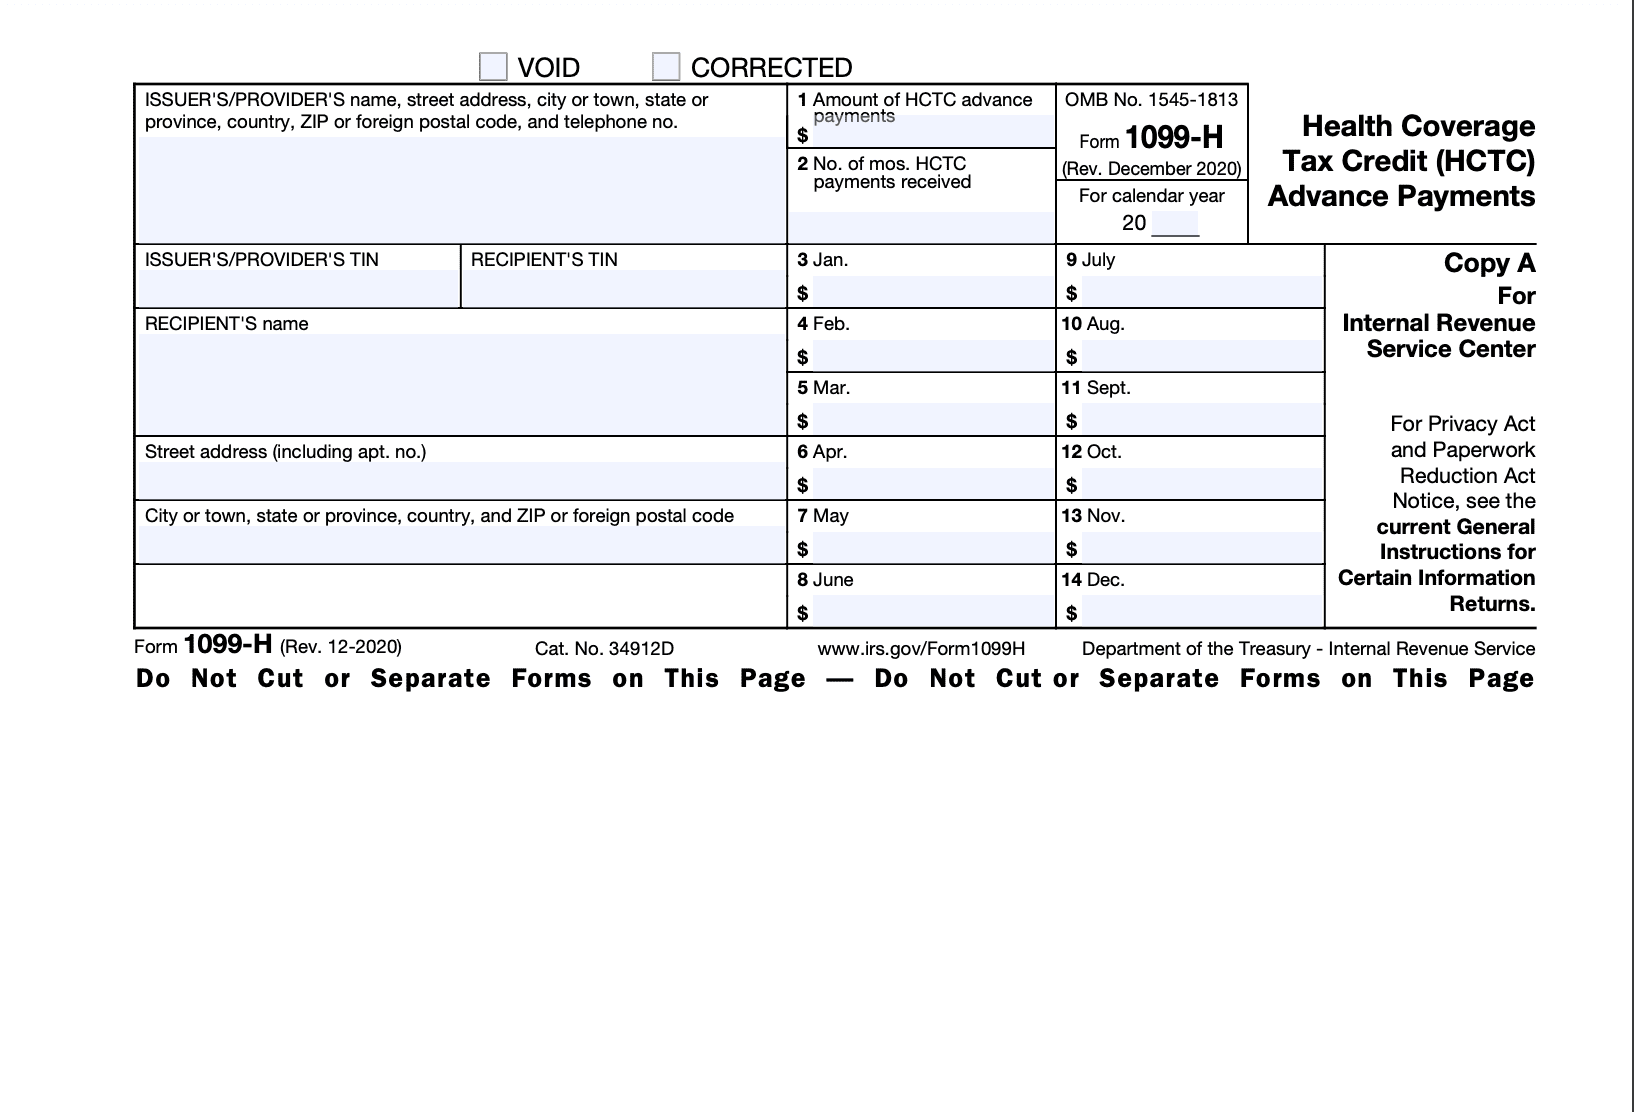 Form 1099-H Page 1